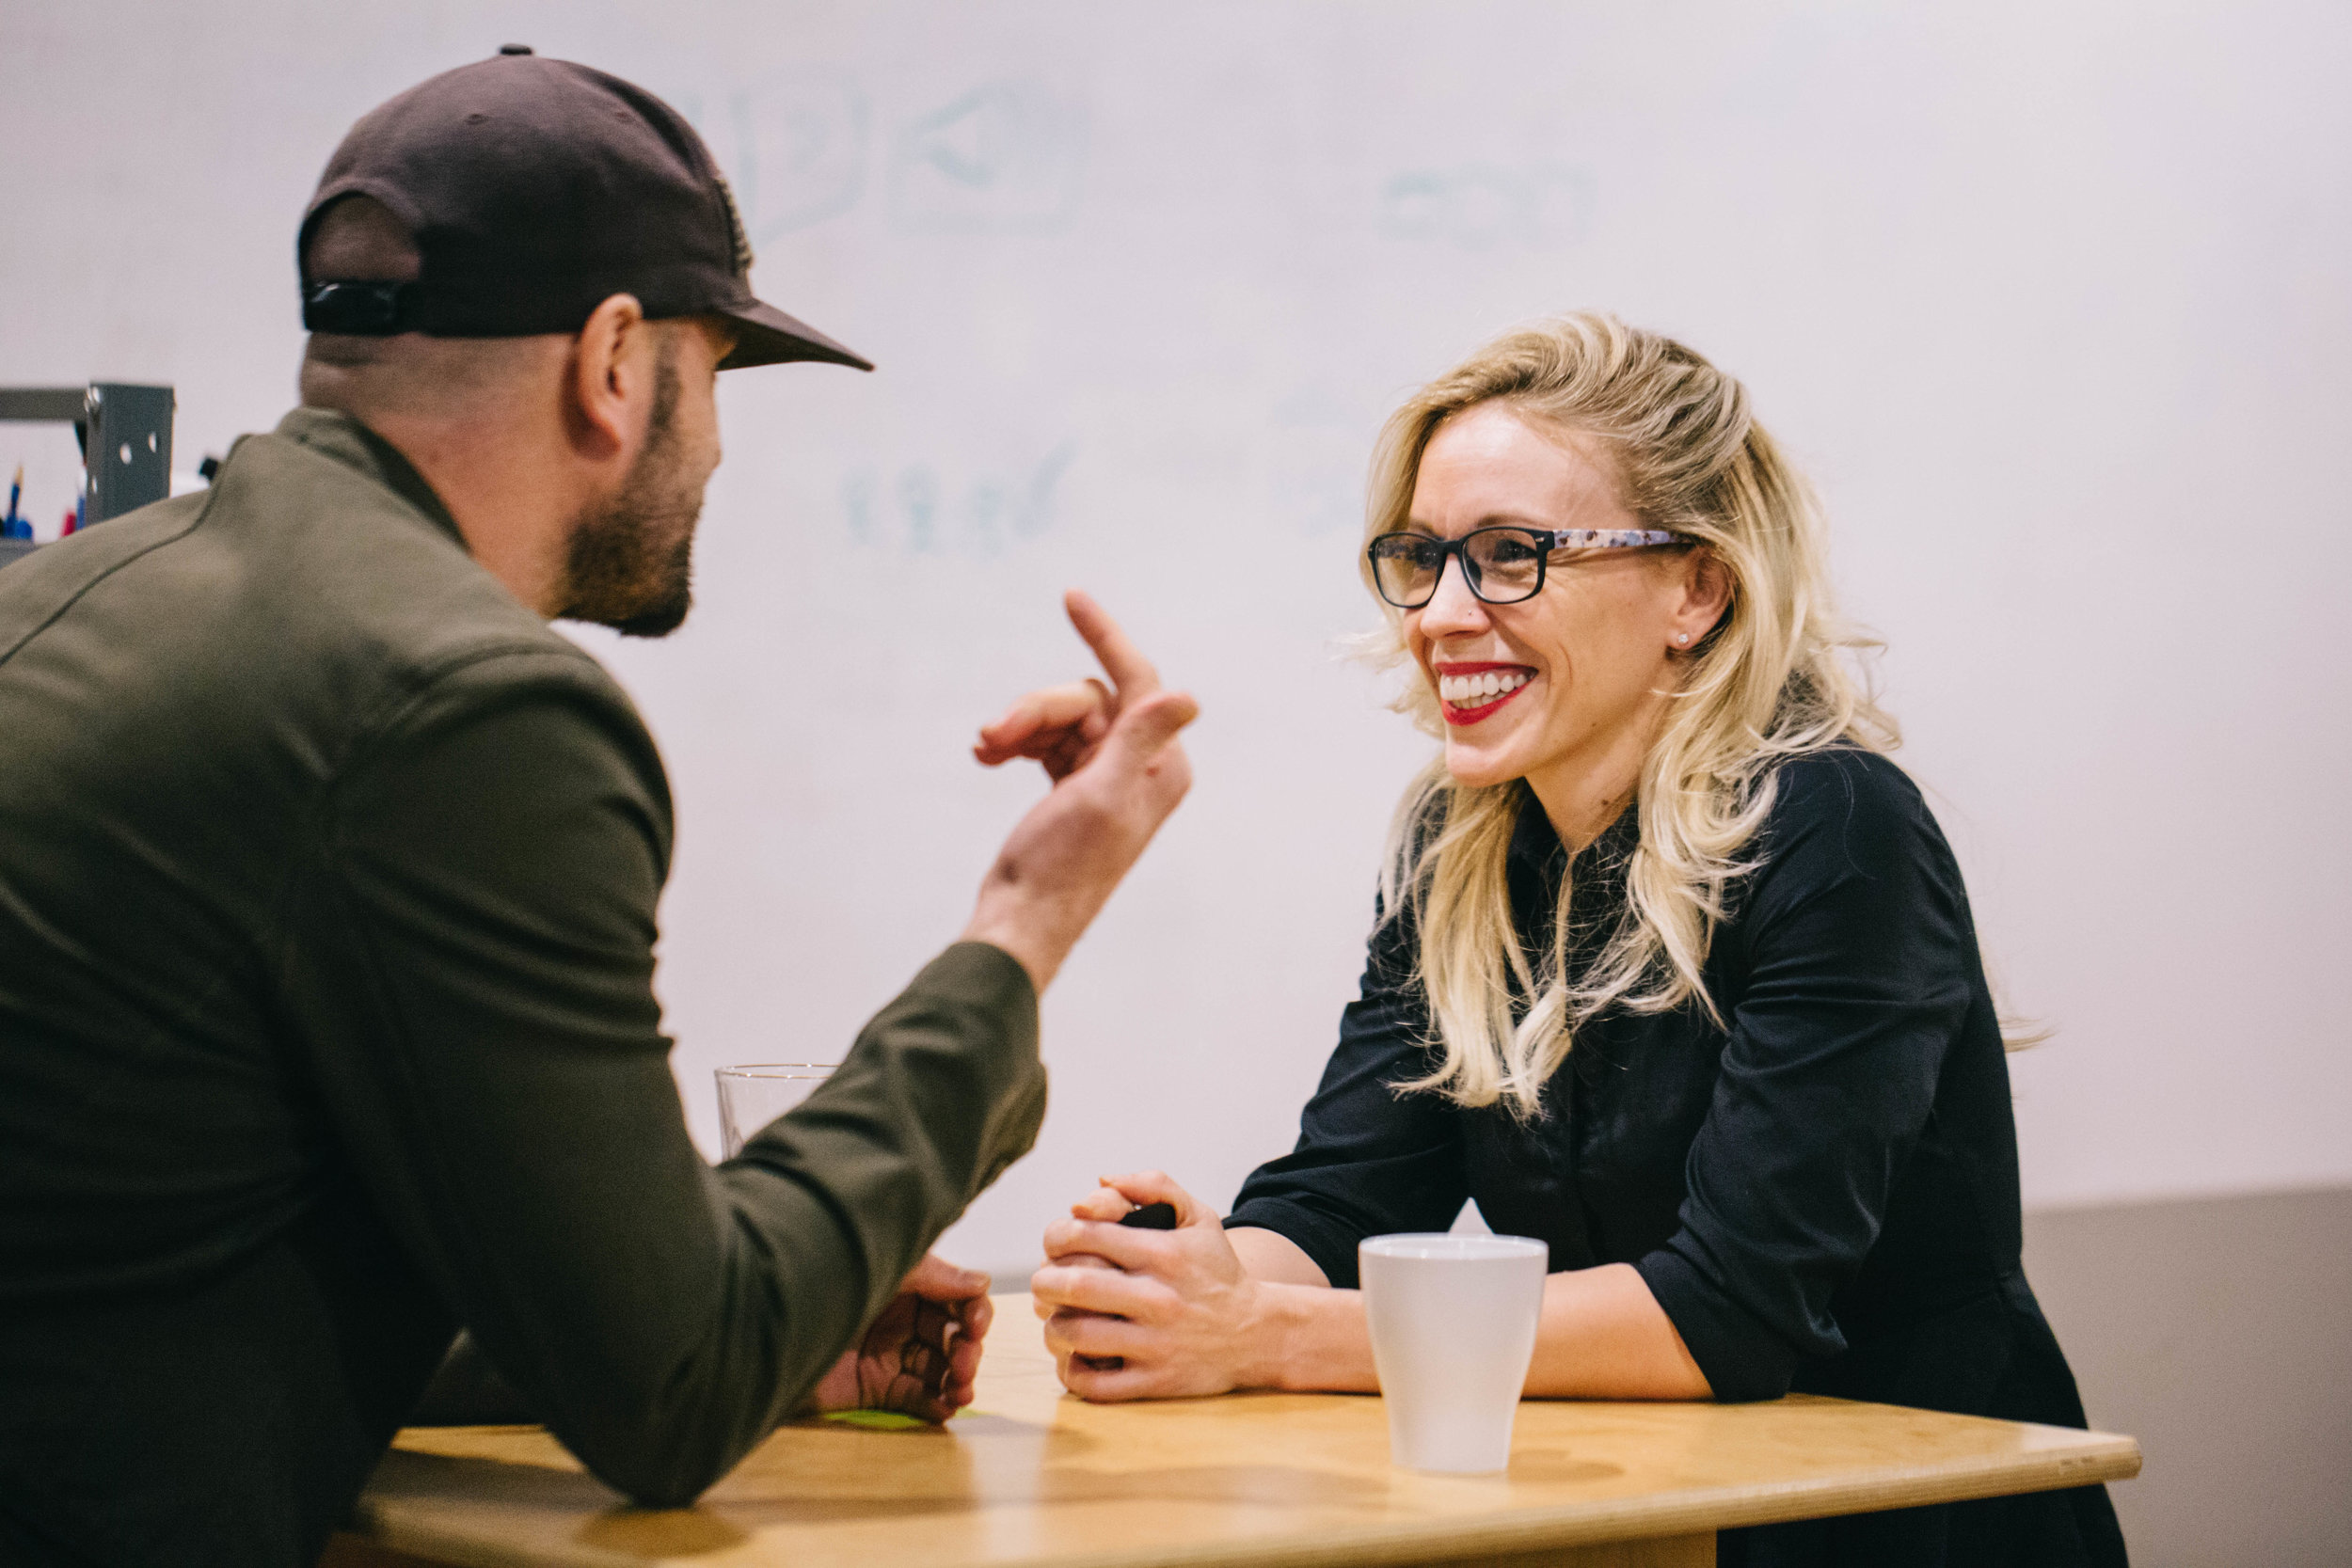 OUR MISSION - At Bunker Labs we believe veterans are our greatest national human asset. We aim to inspire, educate, and connect transitioning service members, veterans, and military spouses as they seek to launch and grow their own businesses.Learn More